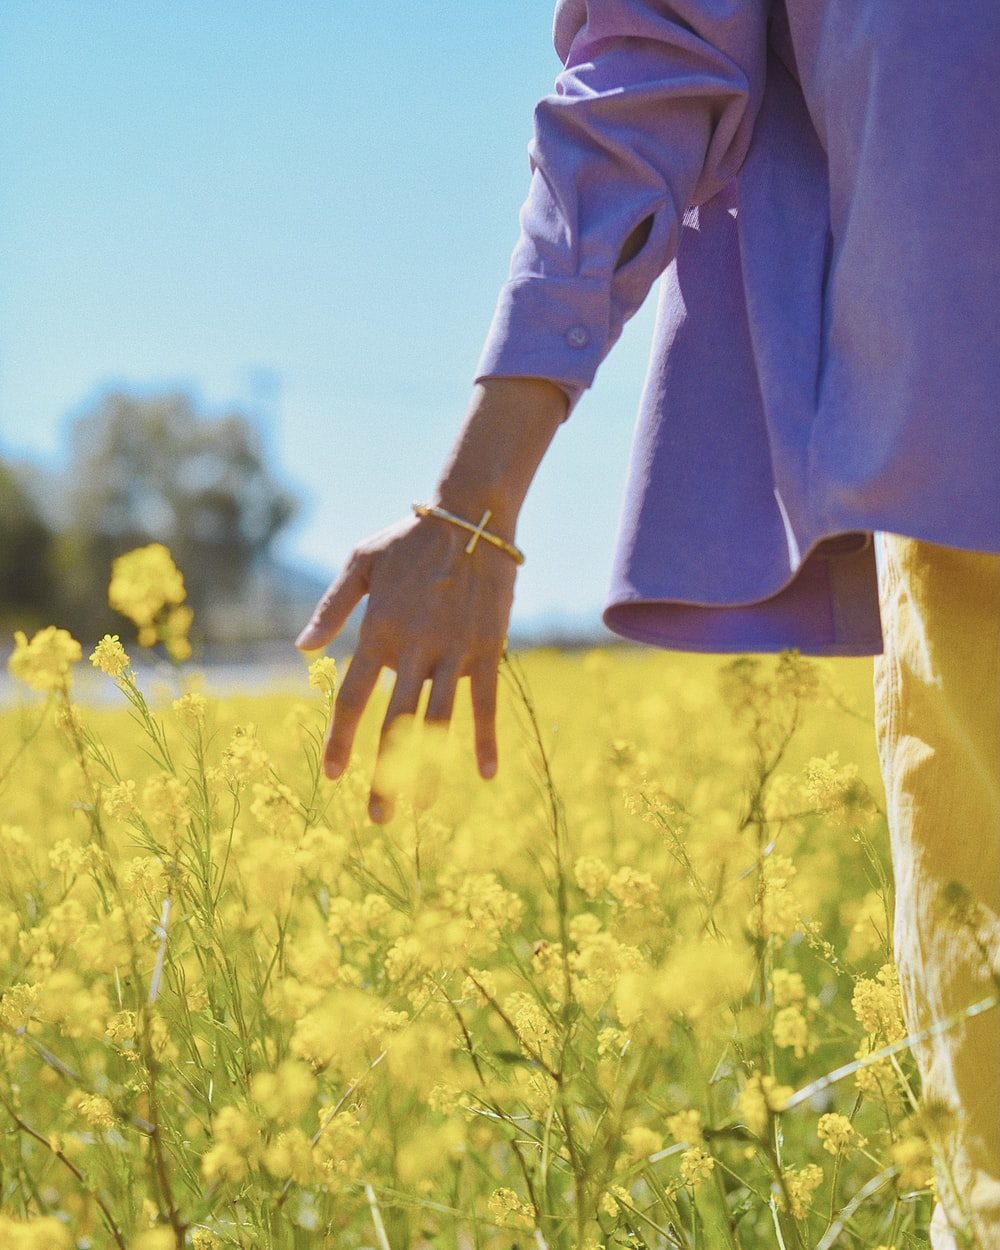 person in brown long sleeve shirt standing on yellow flower field during daytime